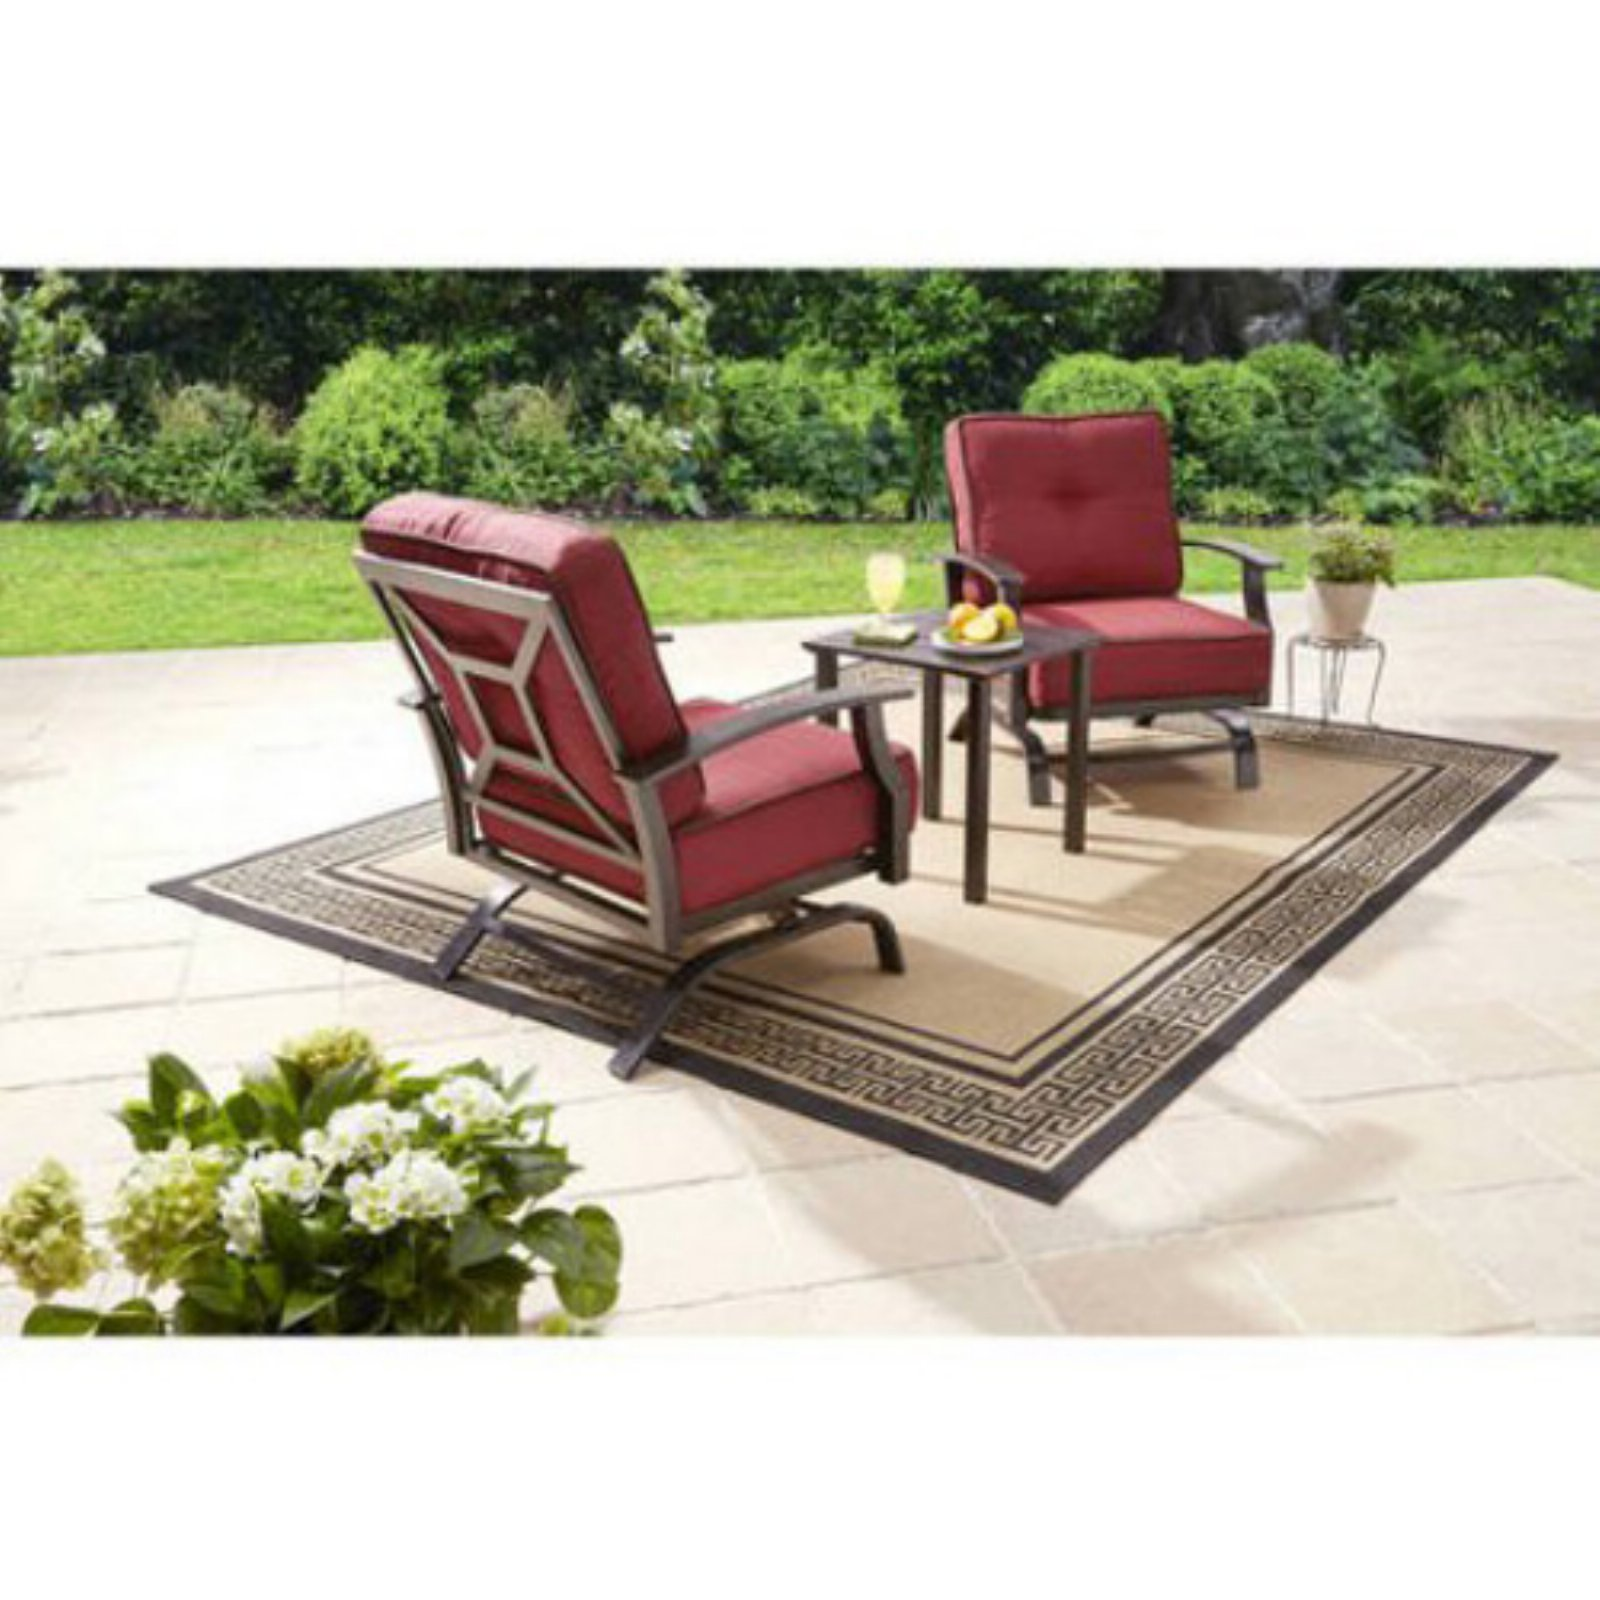 2df84727ea4d Better Homes & Gardens Carter Hills 3-Piece Patio Outdoor Chat Set Red